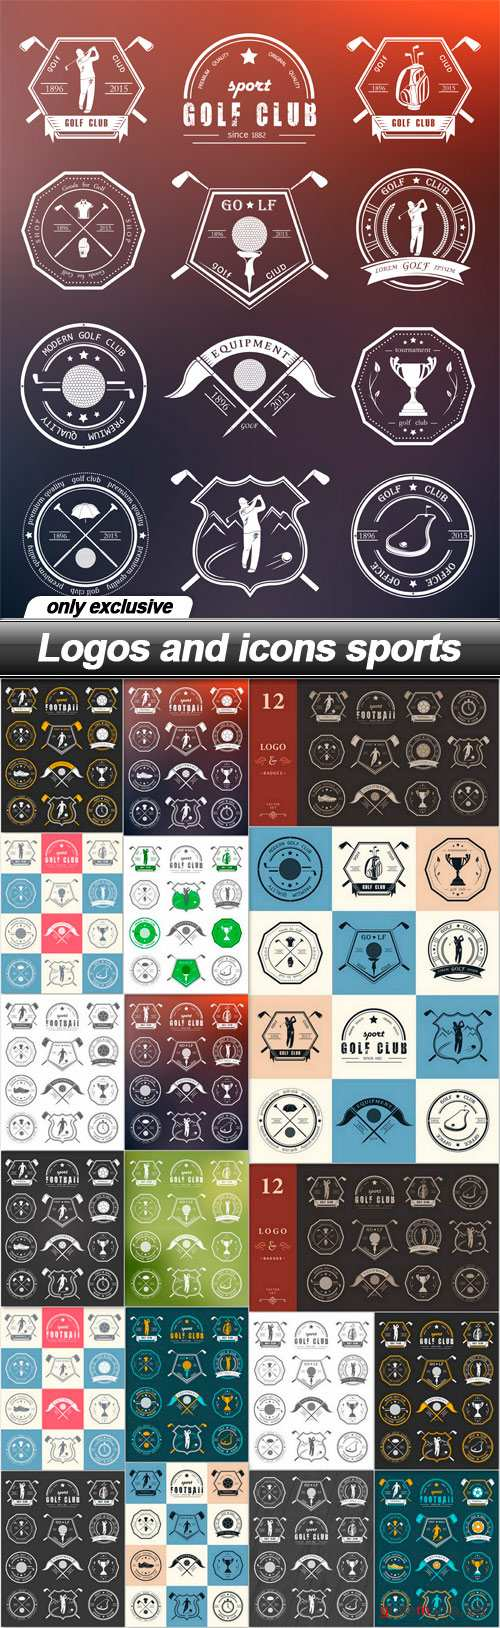 Logos and icons sports - 19 EPS